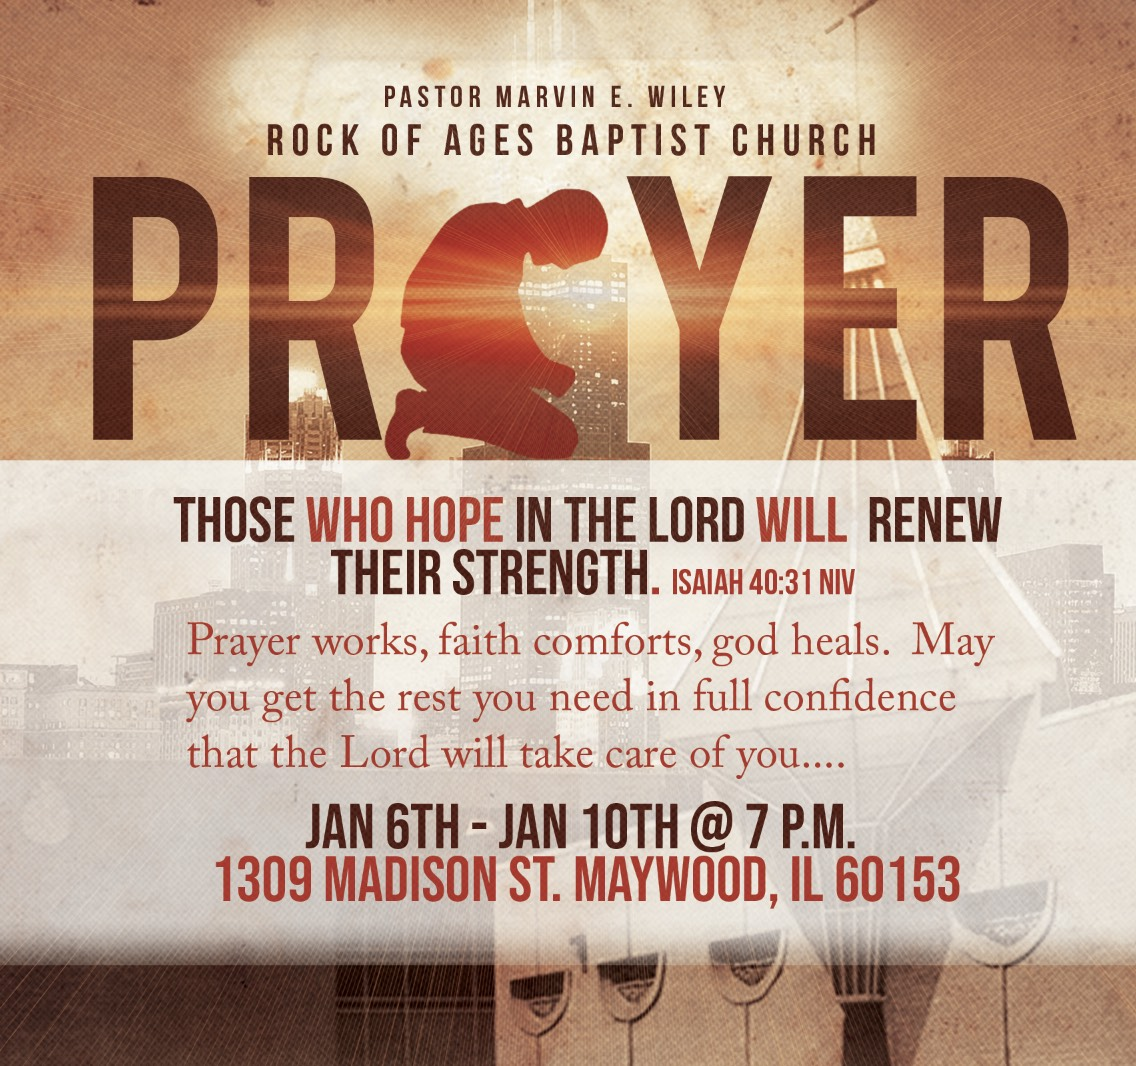 Rock of Ages Baptist Church Prayer